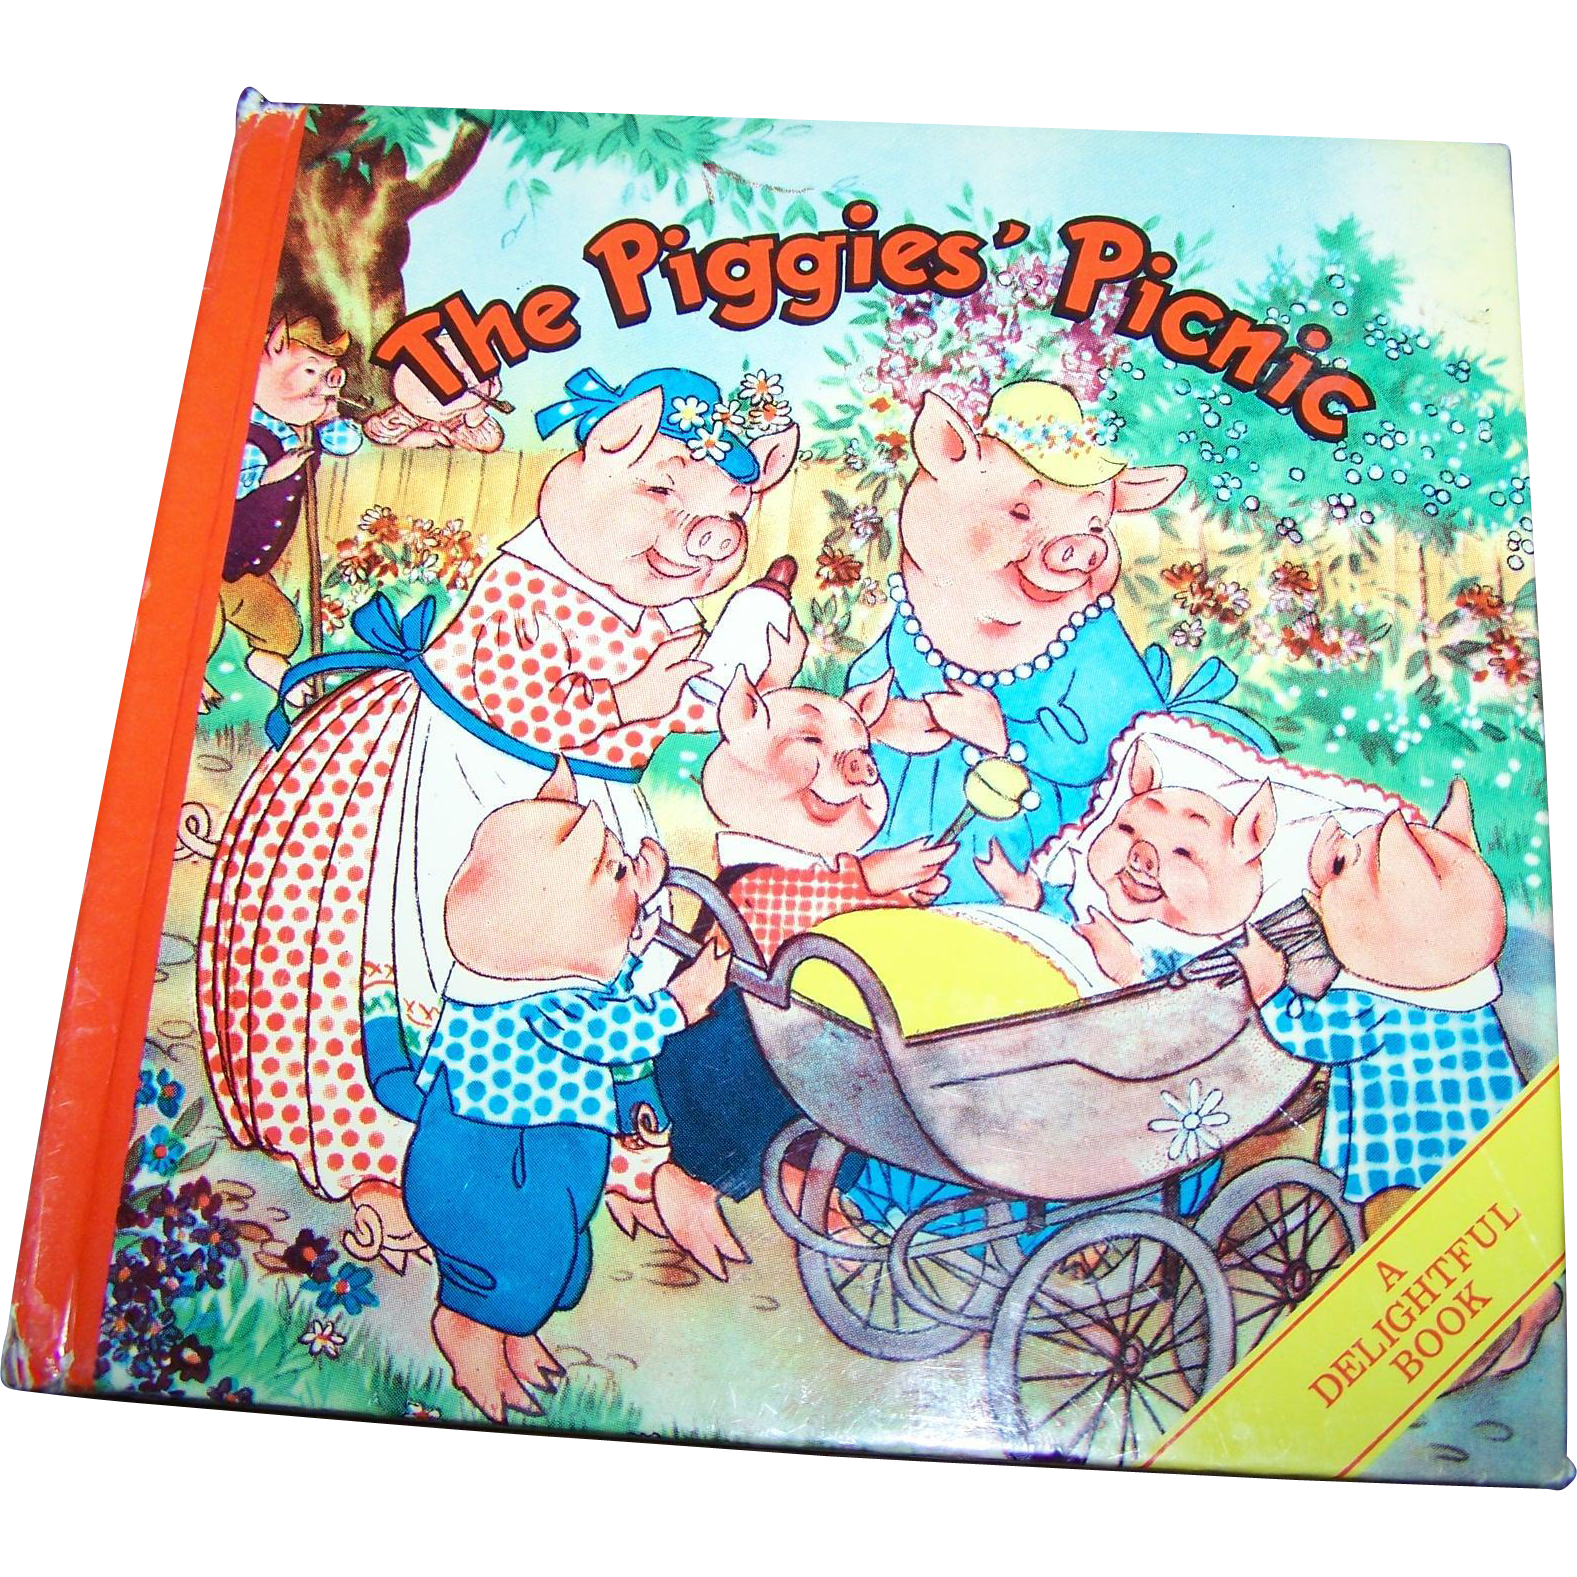 The Piggies Picnic A Delightful Children's Book  By Willy Schermele